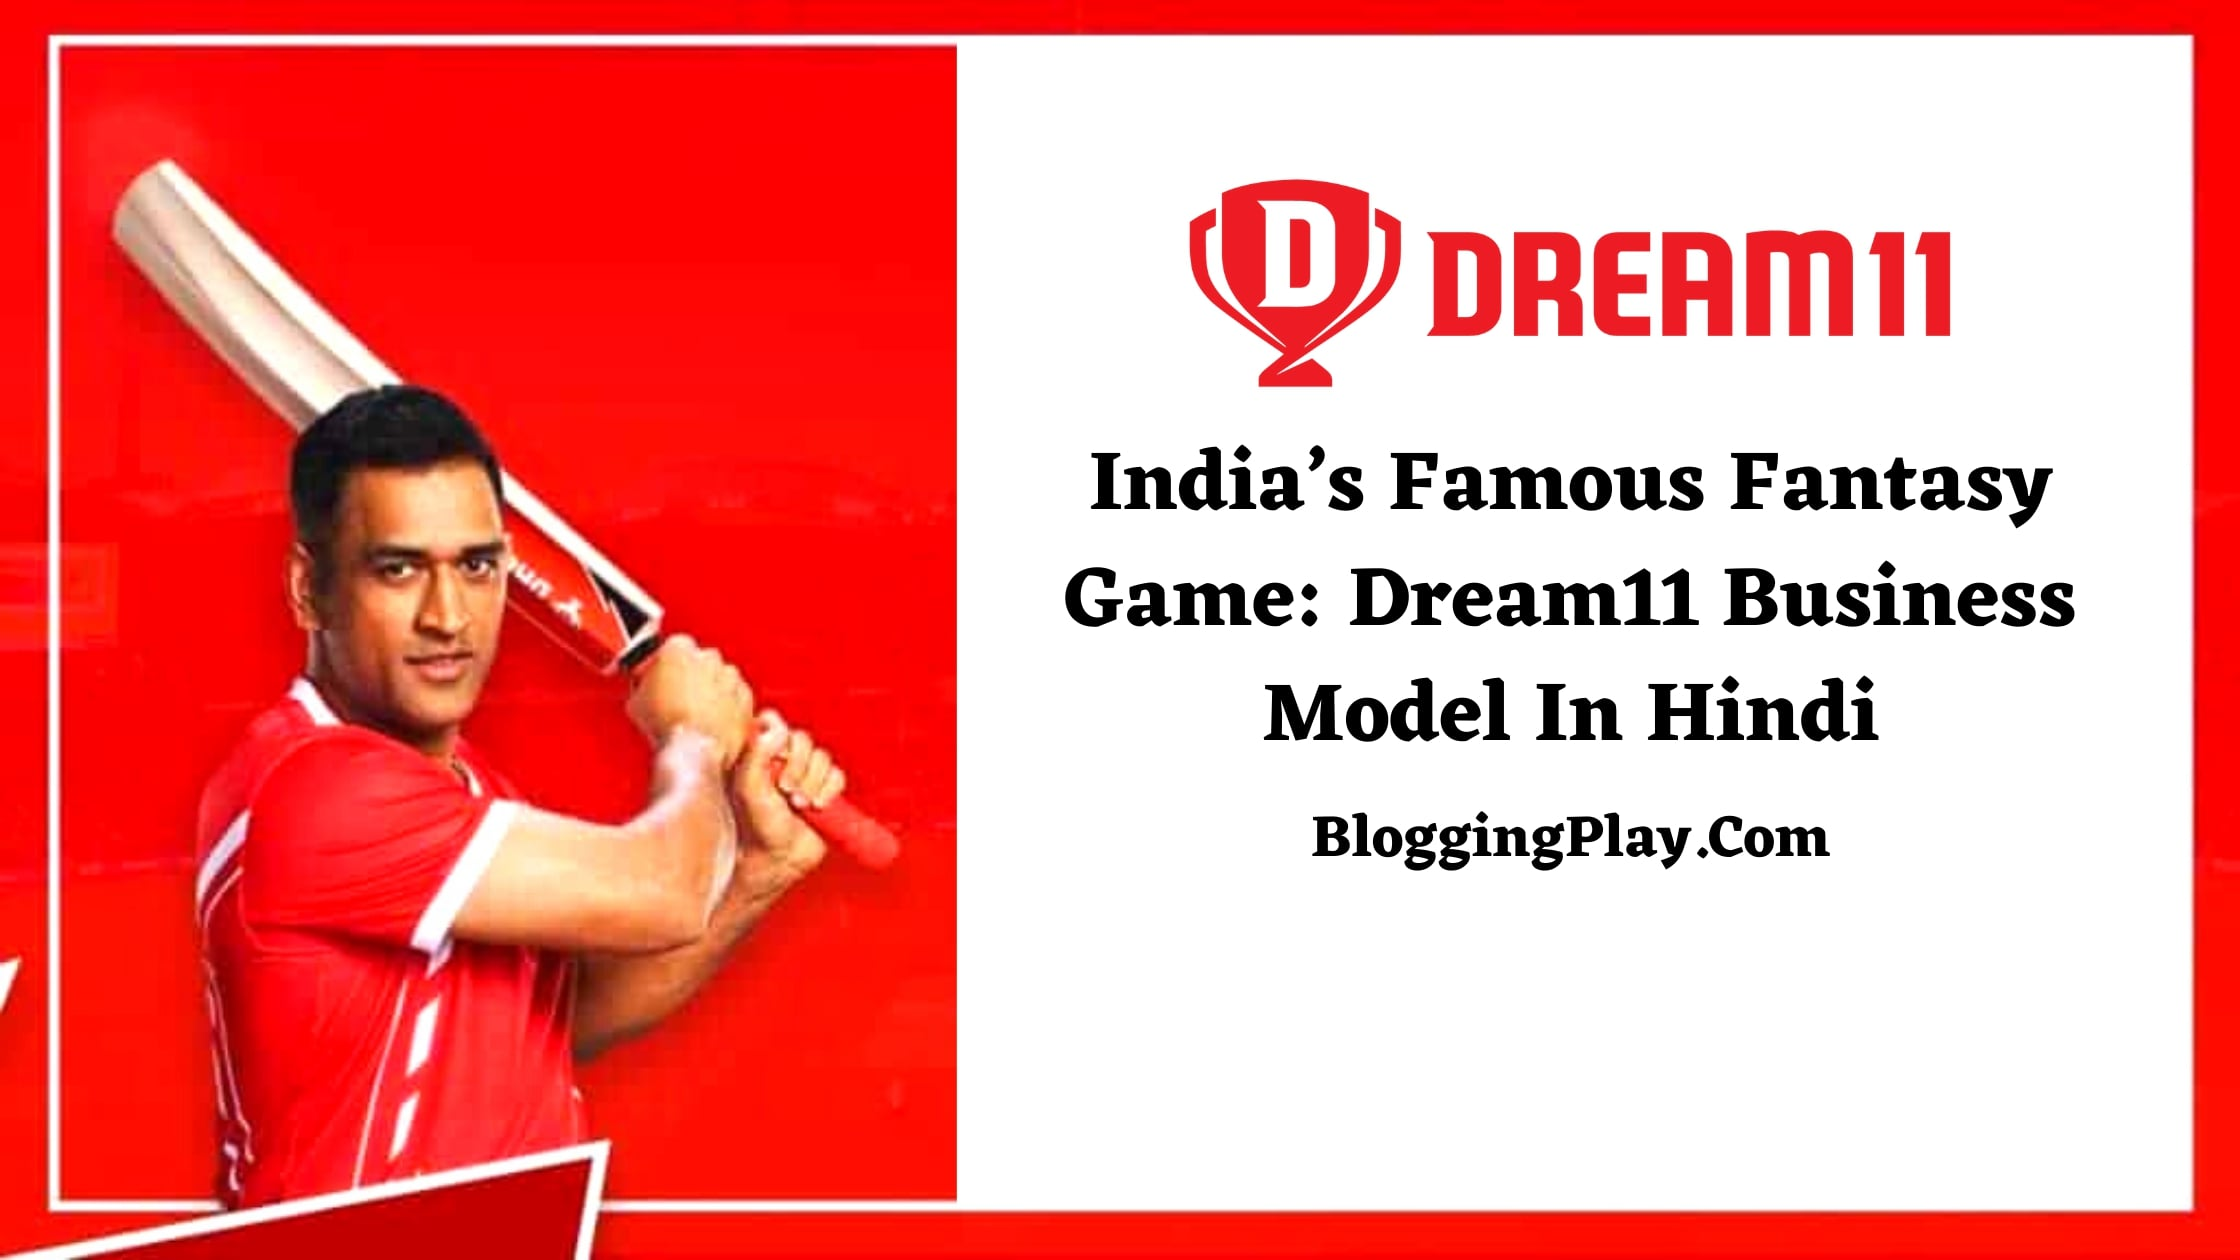 Dream11 Business Model